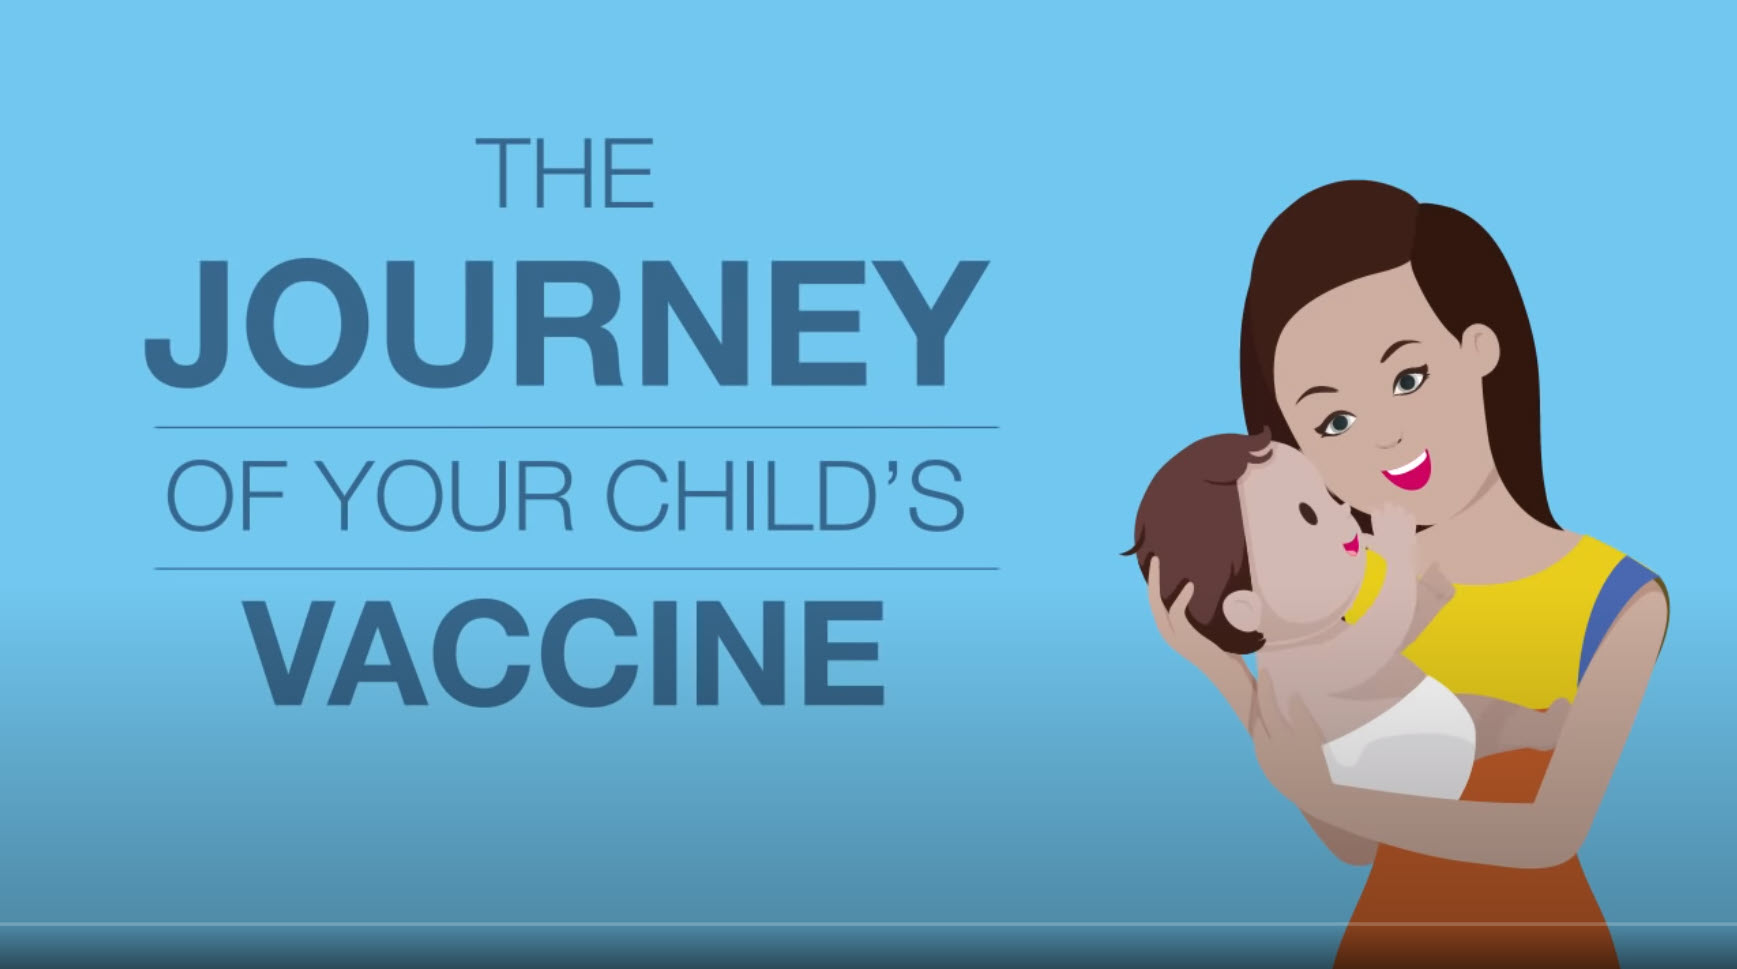 Video The Journey of Your Child's Vaccine